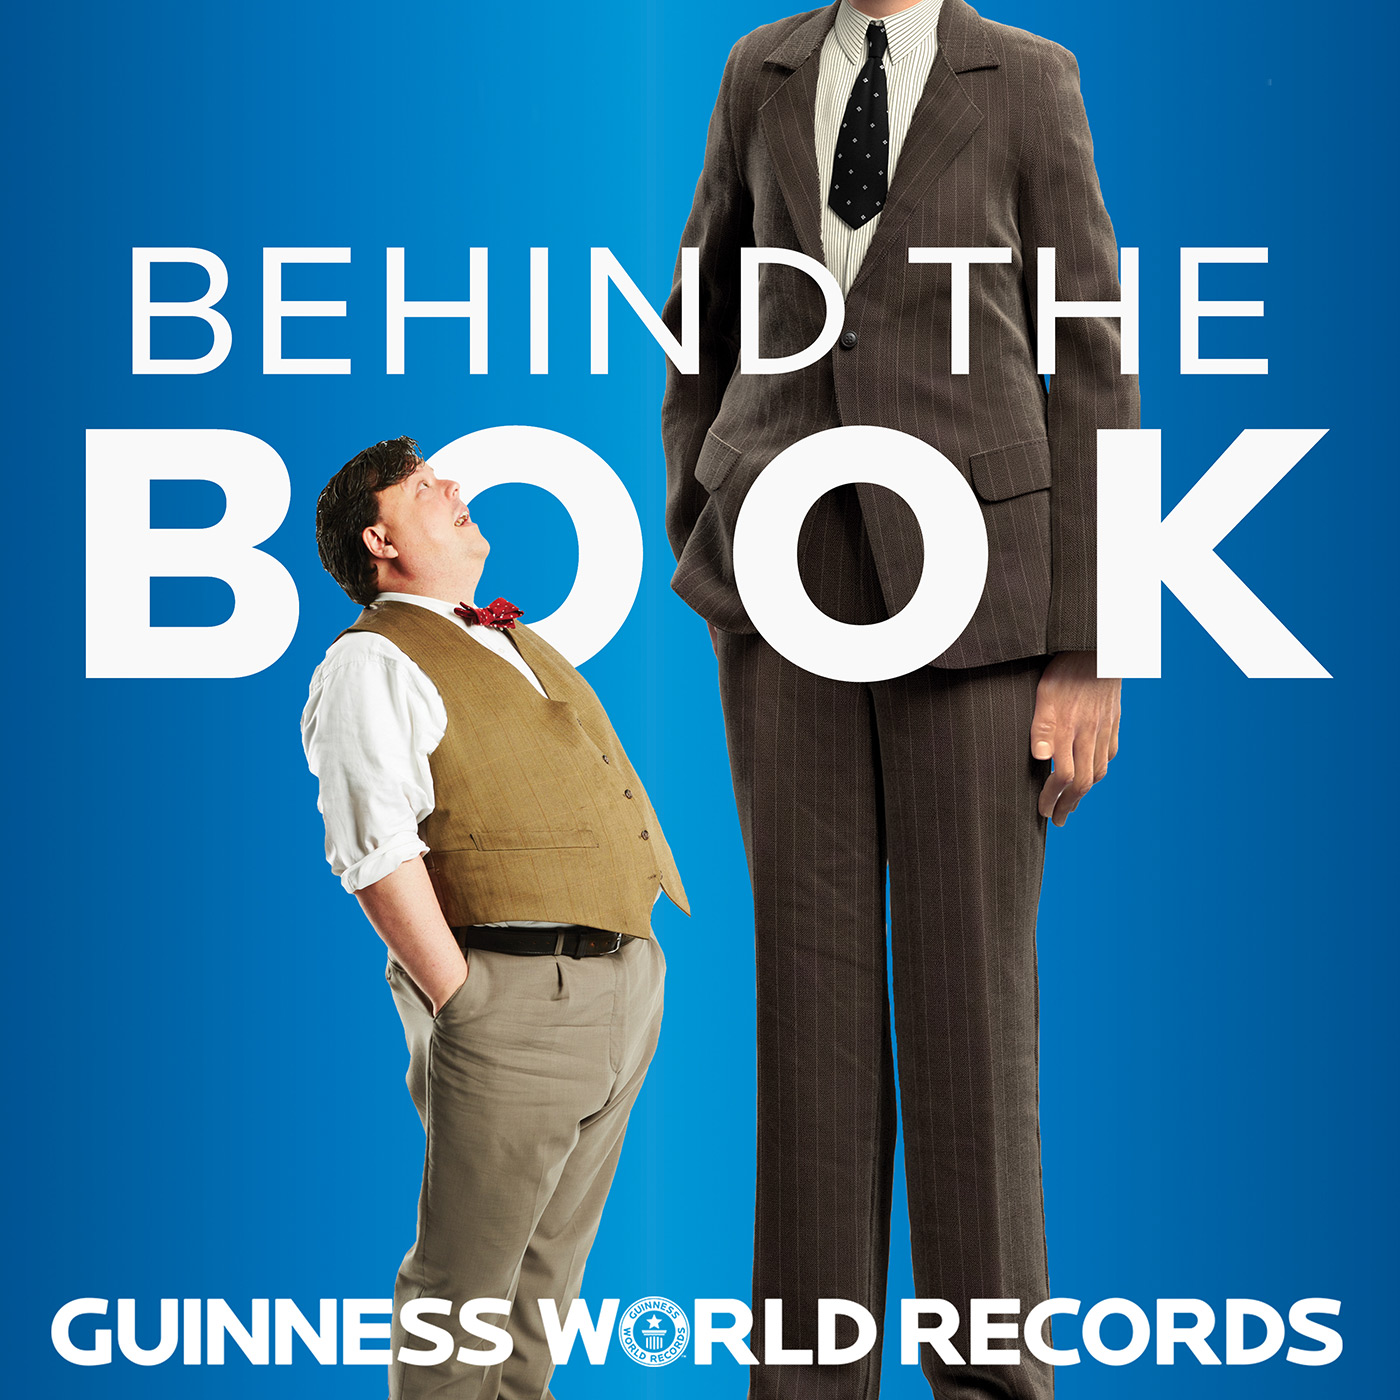 Guinness World Records: Behind The Book